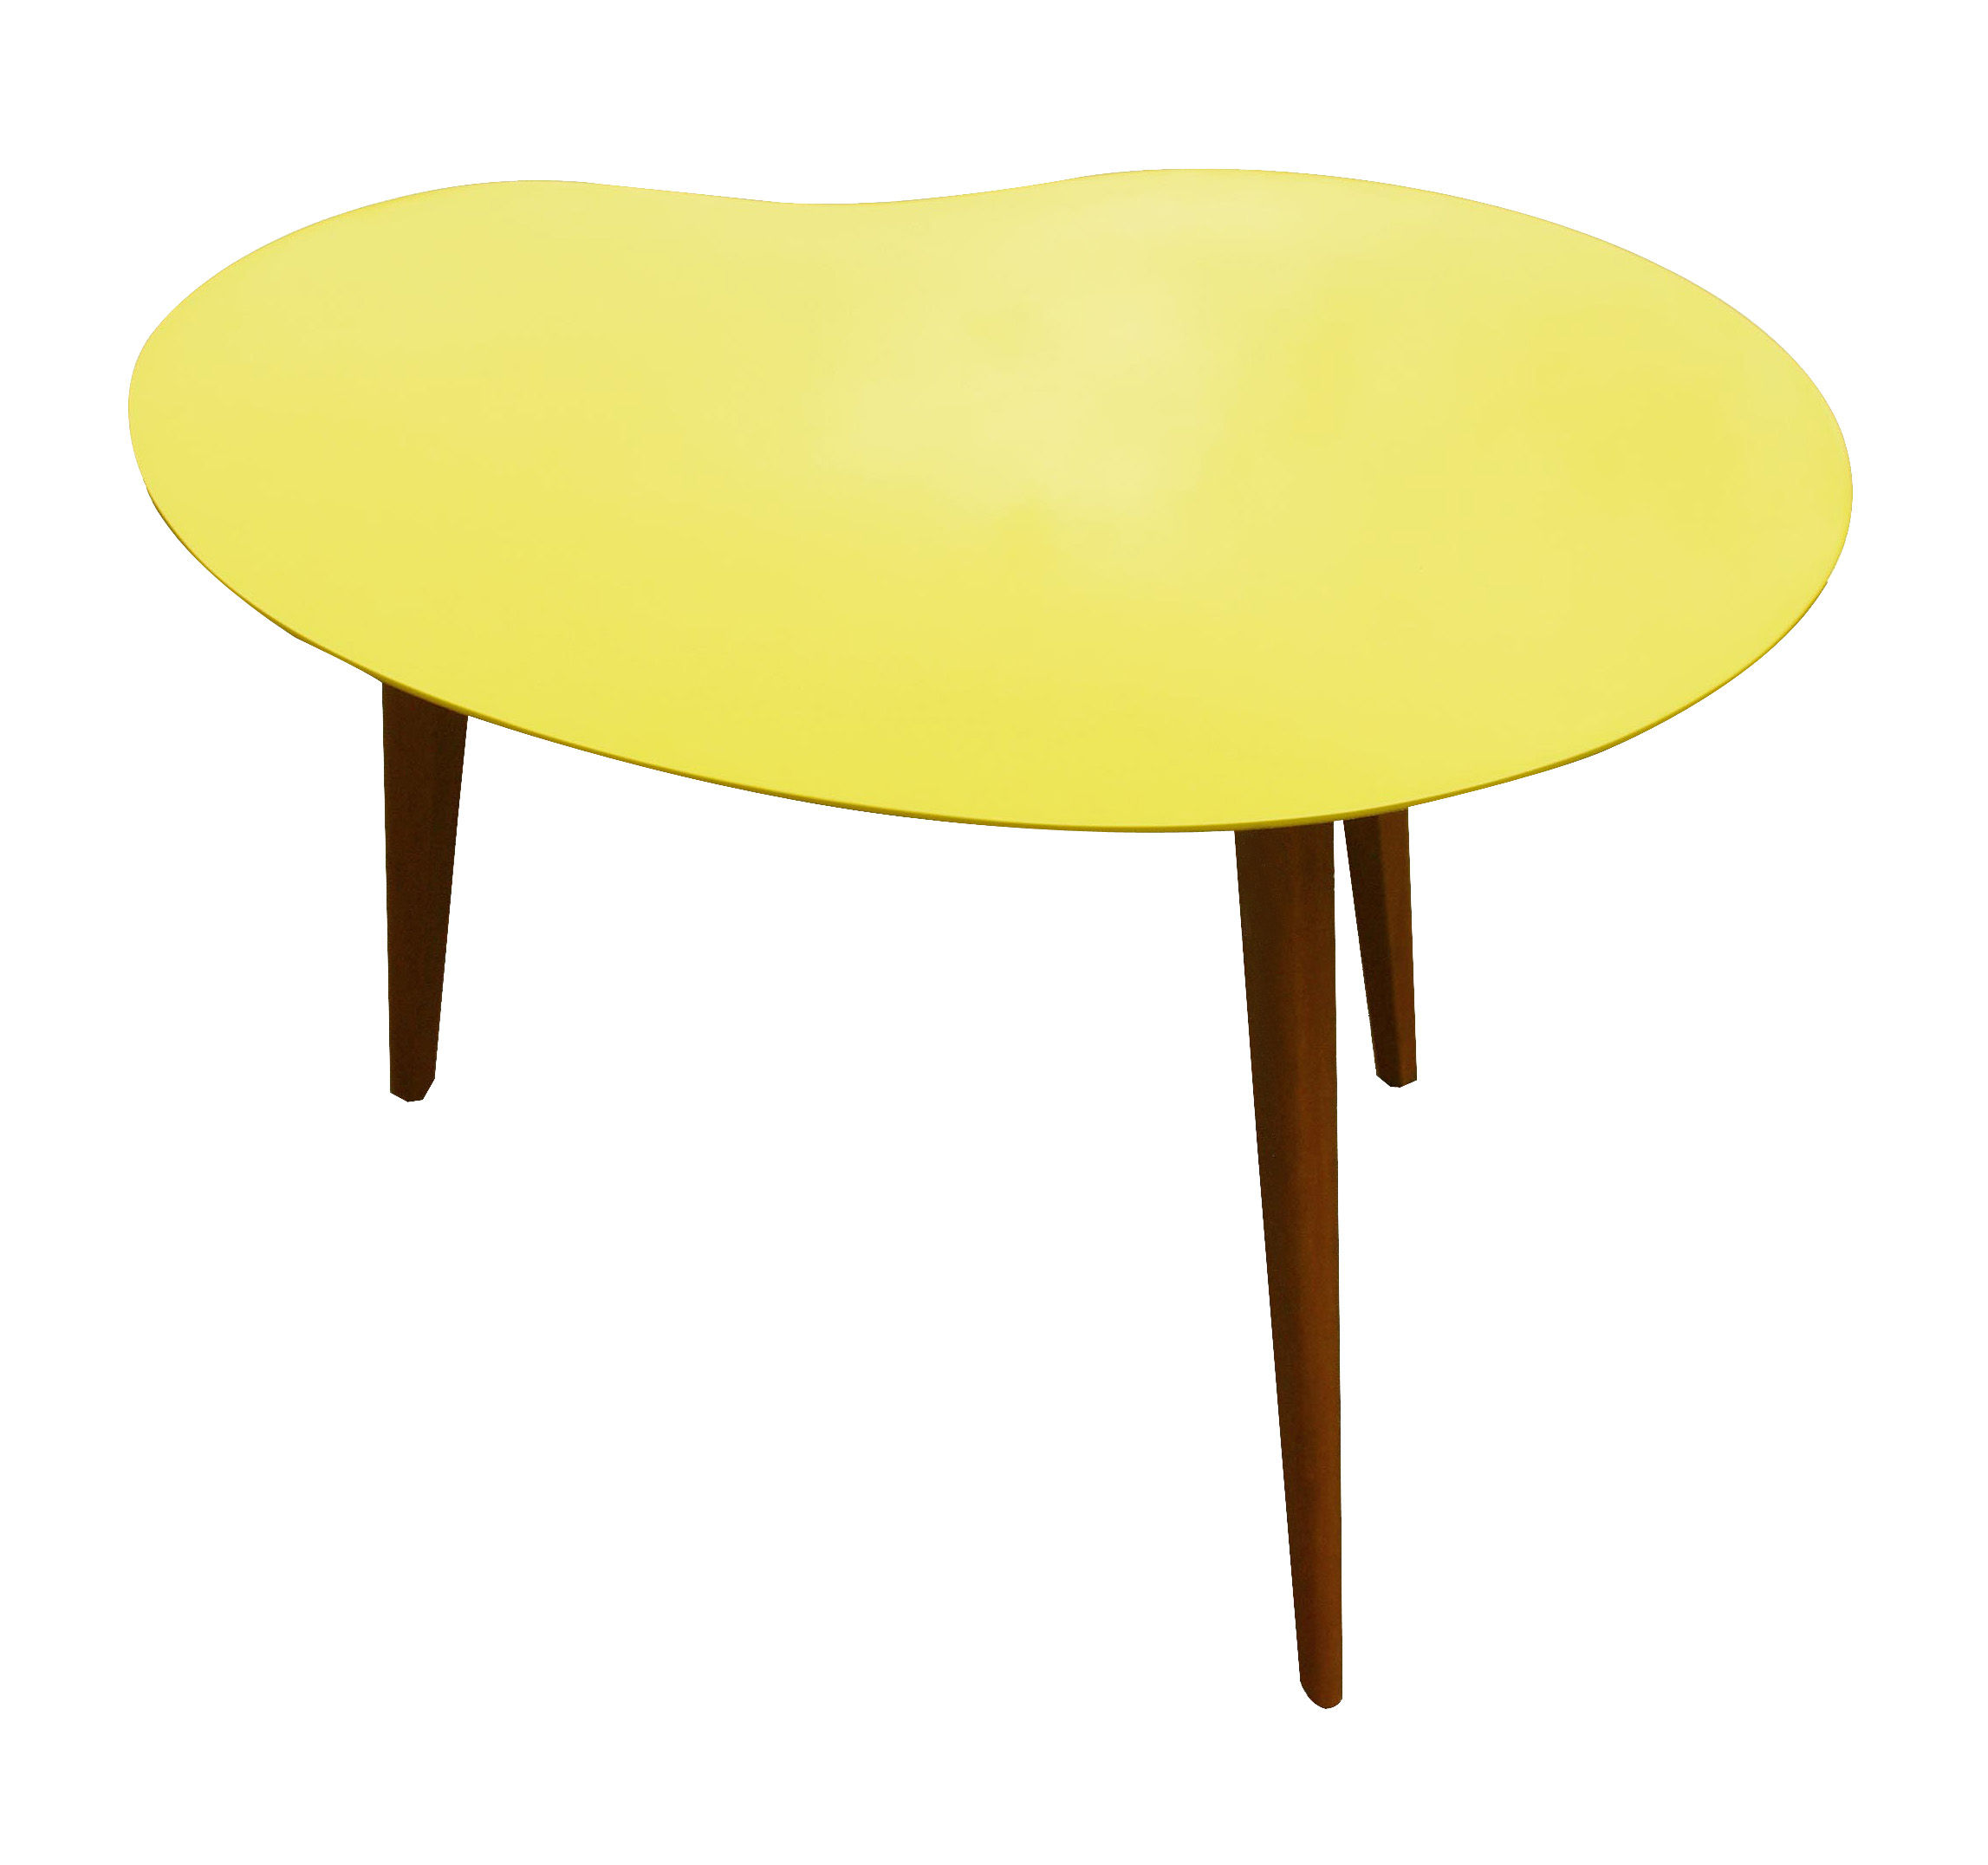 Furniture - Coffee Tables - Lalinde Coffee table - Free form Small by Sentou Edition - Yellow top / Wood legs - Lacquered MDF, Varnished oak